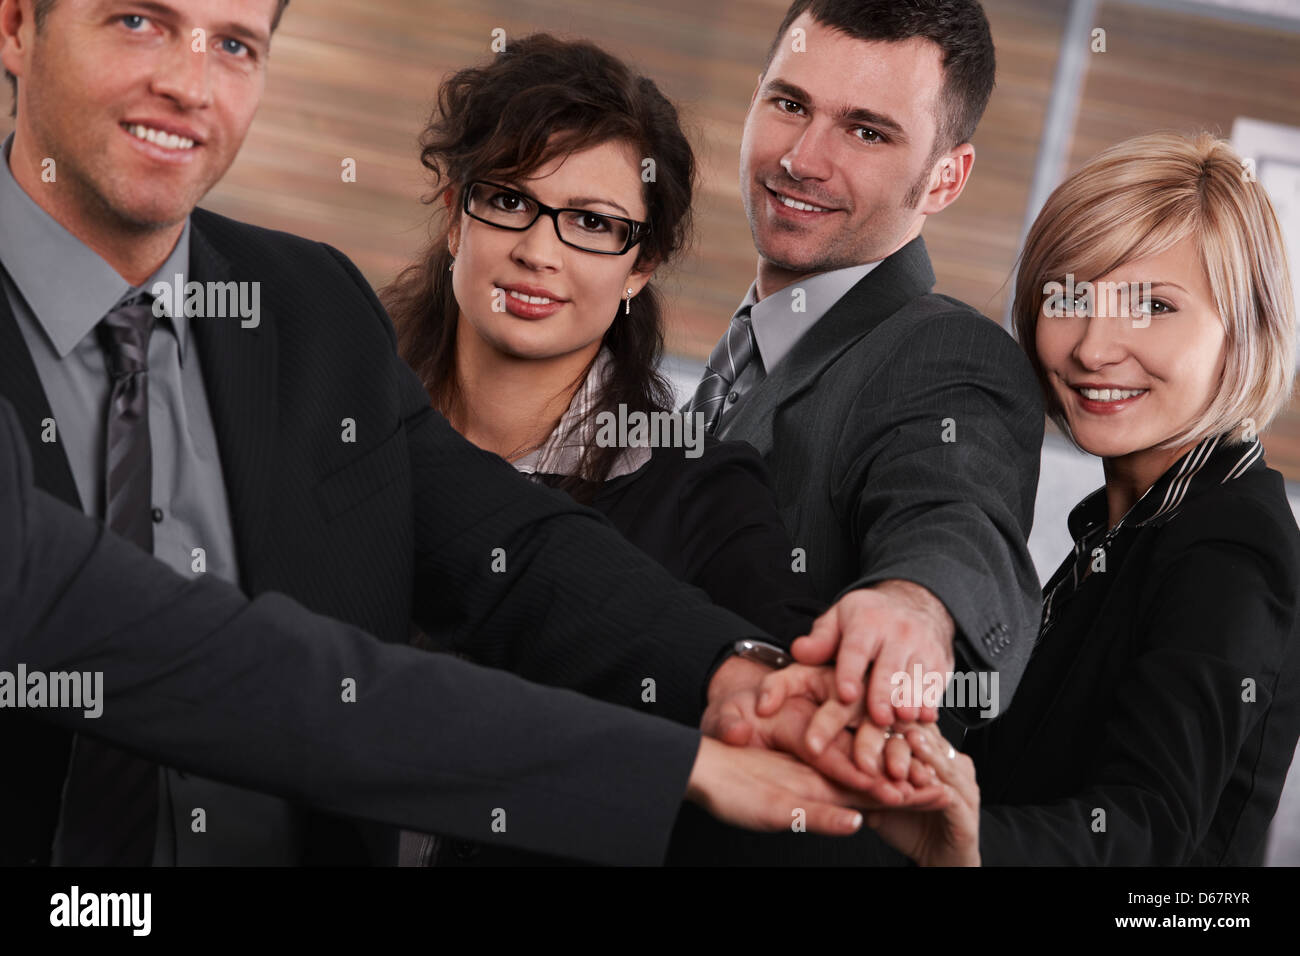 cooperation,team spirit,handshake,business person - Stock Image